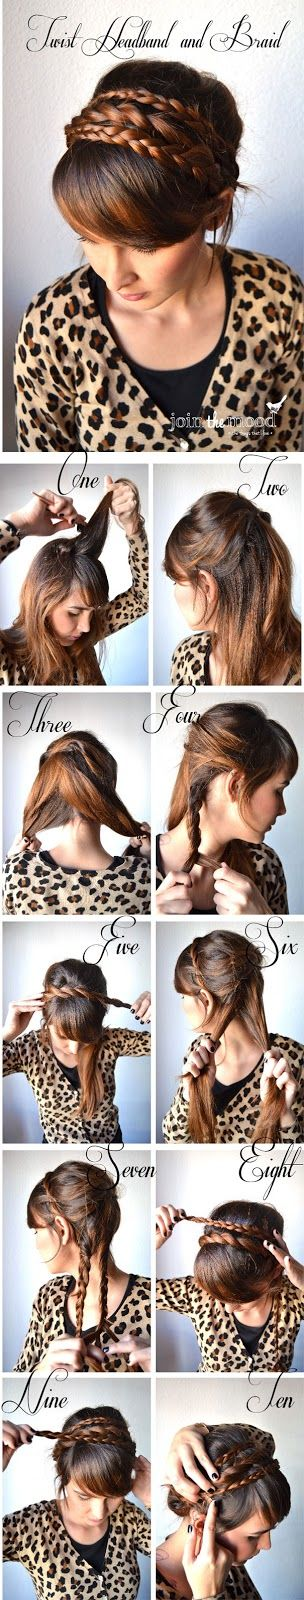 Make twist Headband And Braid | hairstyles tutorial